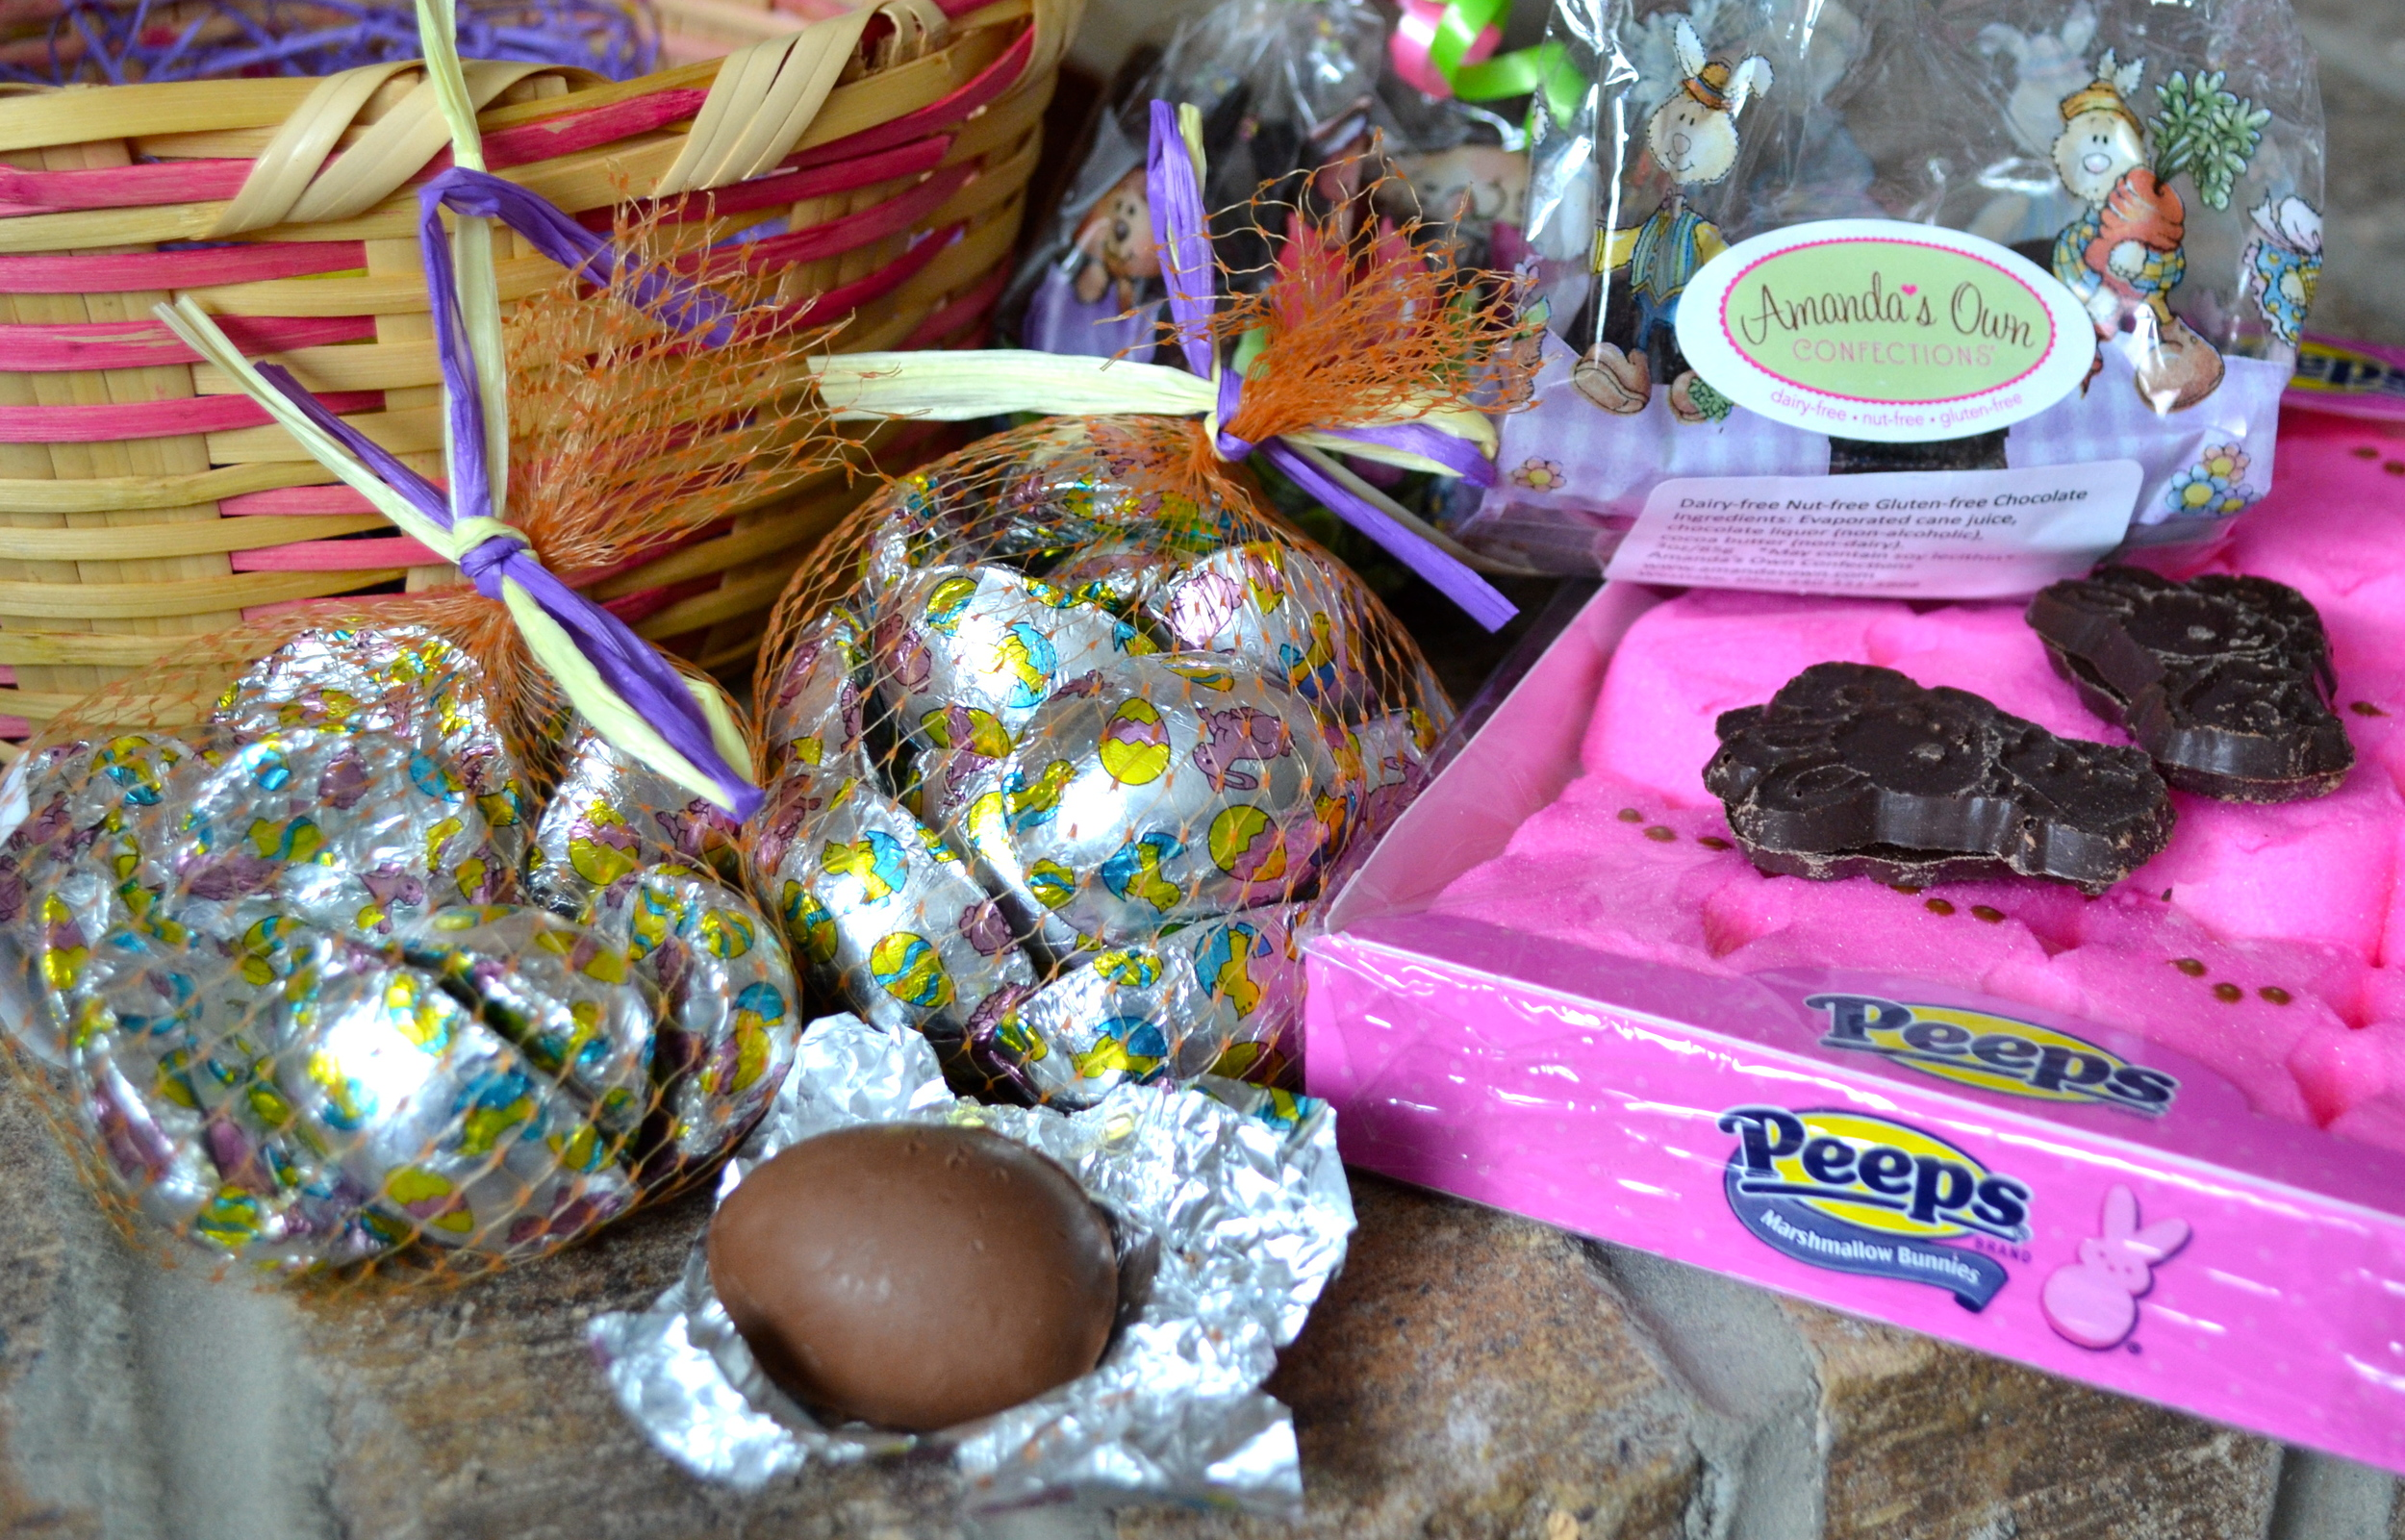 The nut free easter bunny is coming and he is bringing chocolate her basket will be filled with vermont nut free crispy milk chocolate eggs amandas own springtime bunny bags and peeps just a note amandas own is negle Image collections